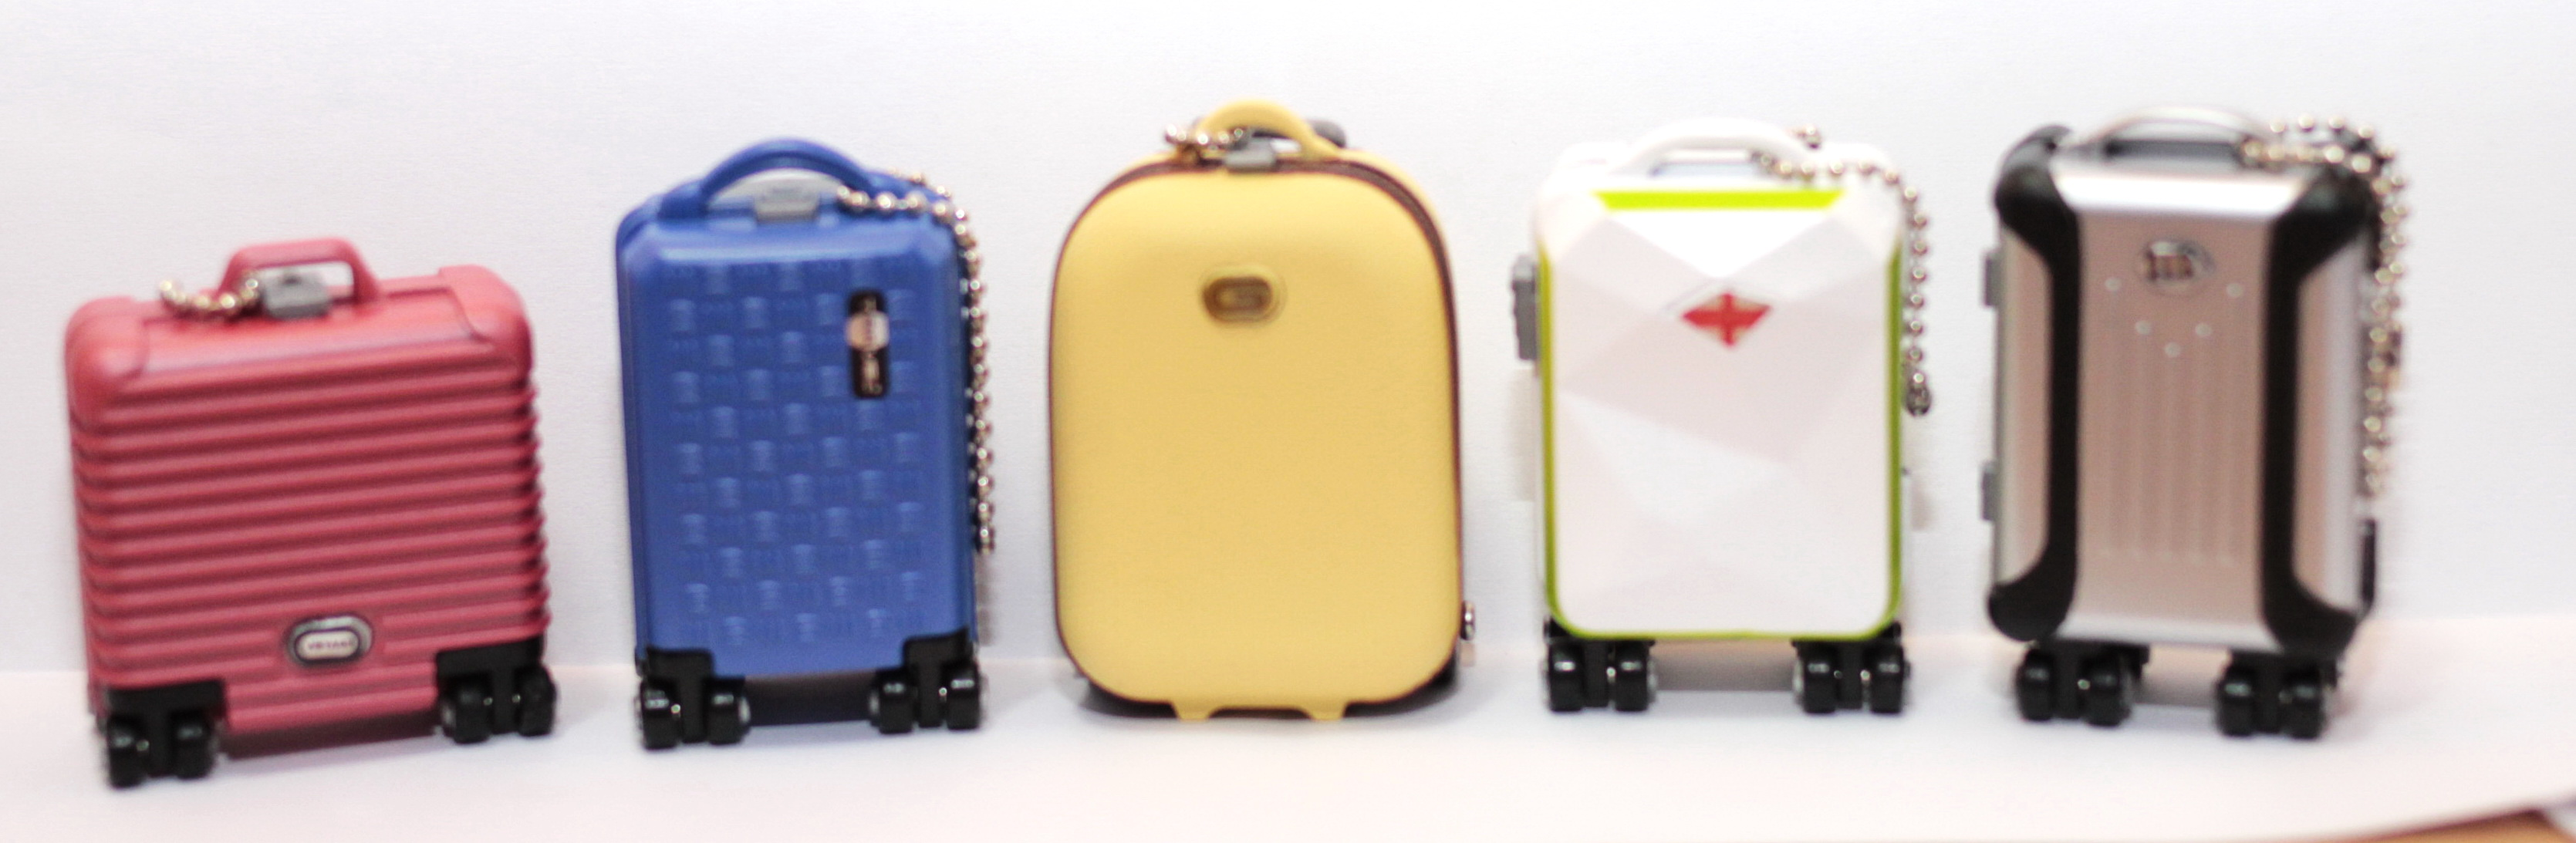 Japan Yujin Miniature My mini Luggage / suit case set of 5 - Click Image to Close